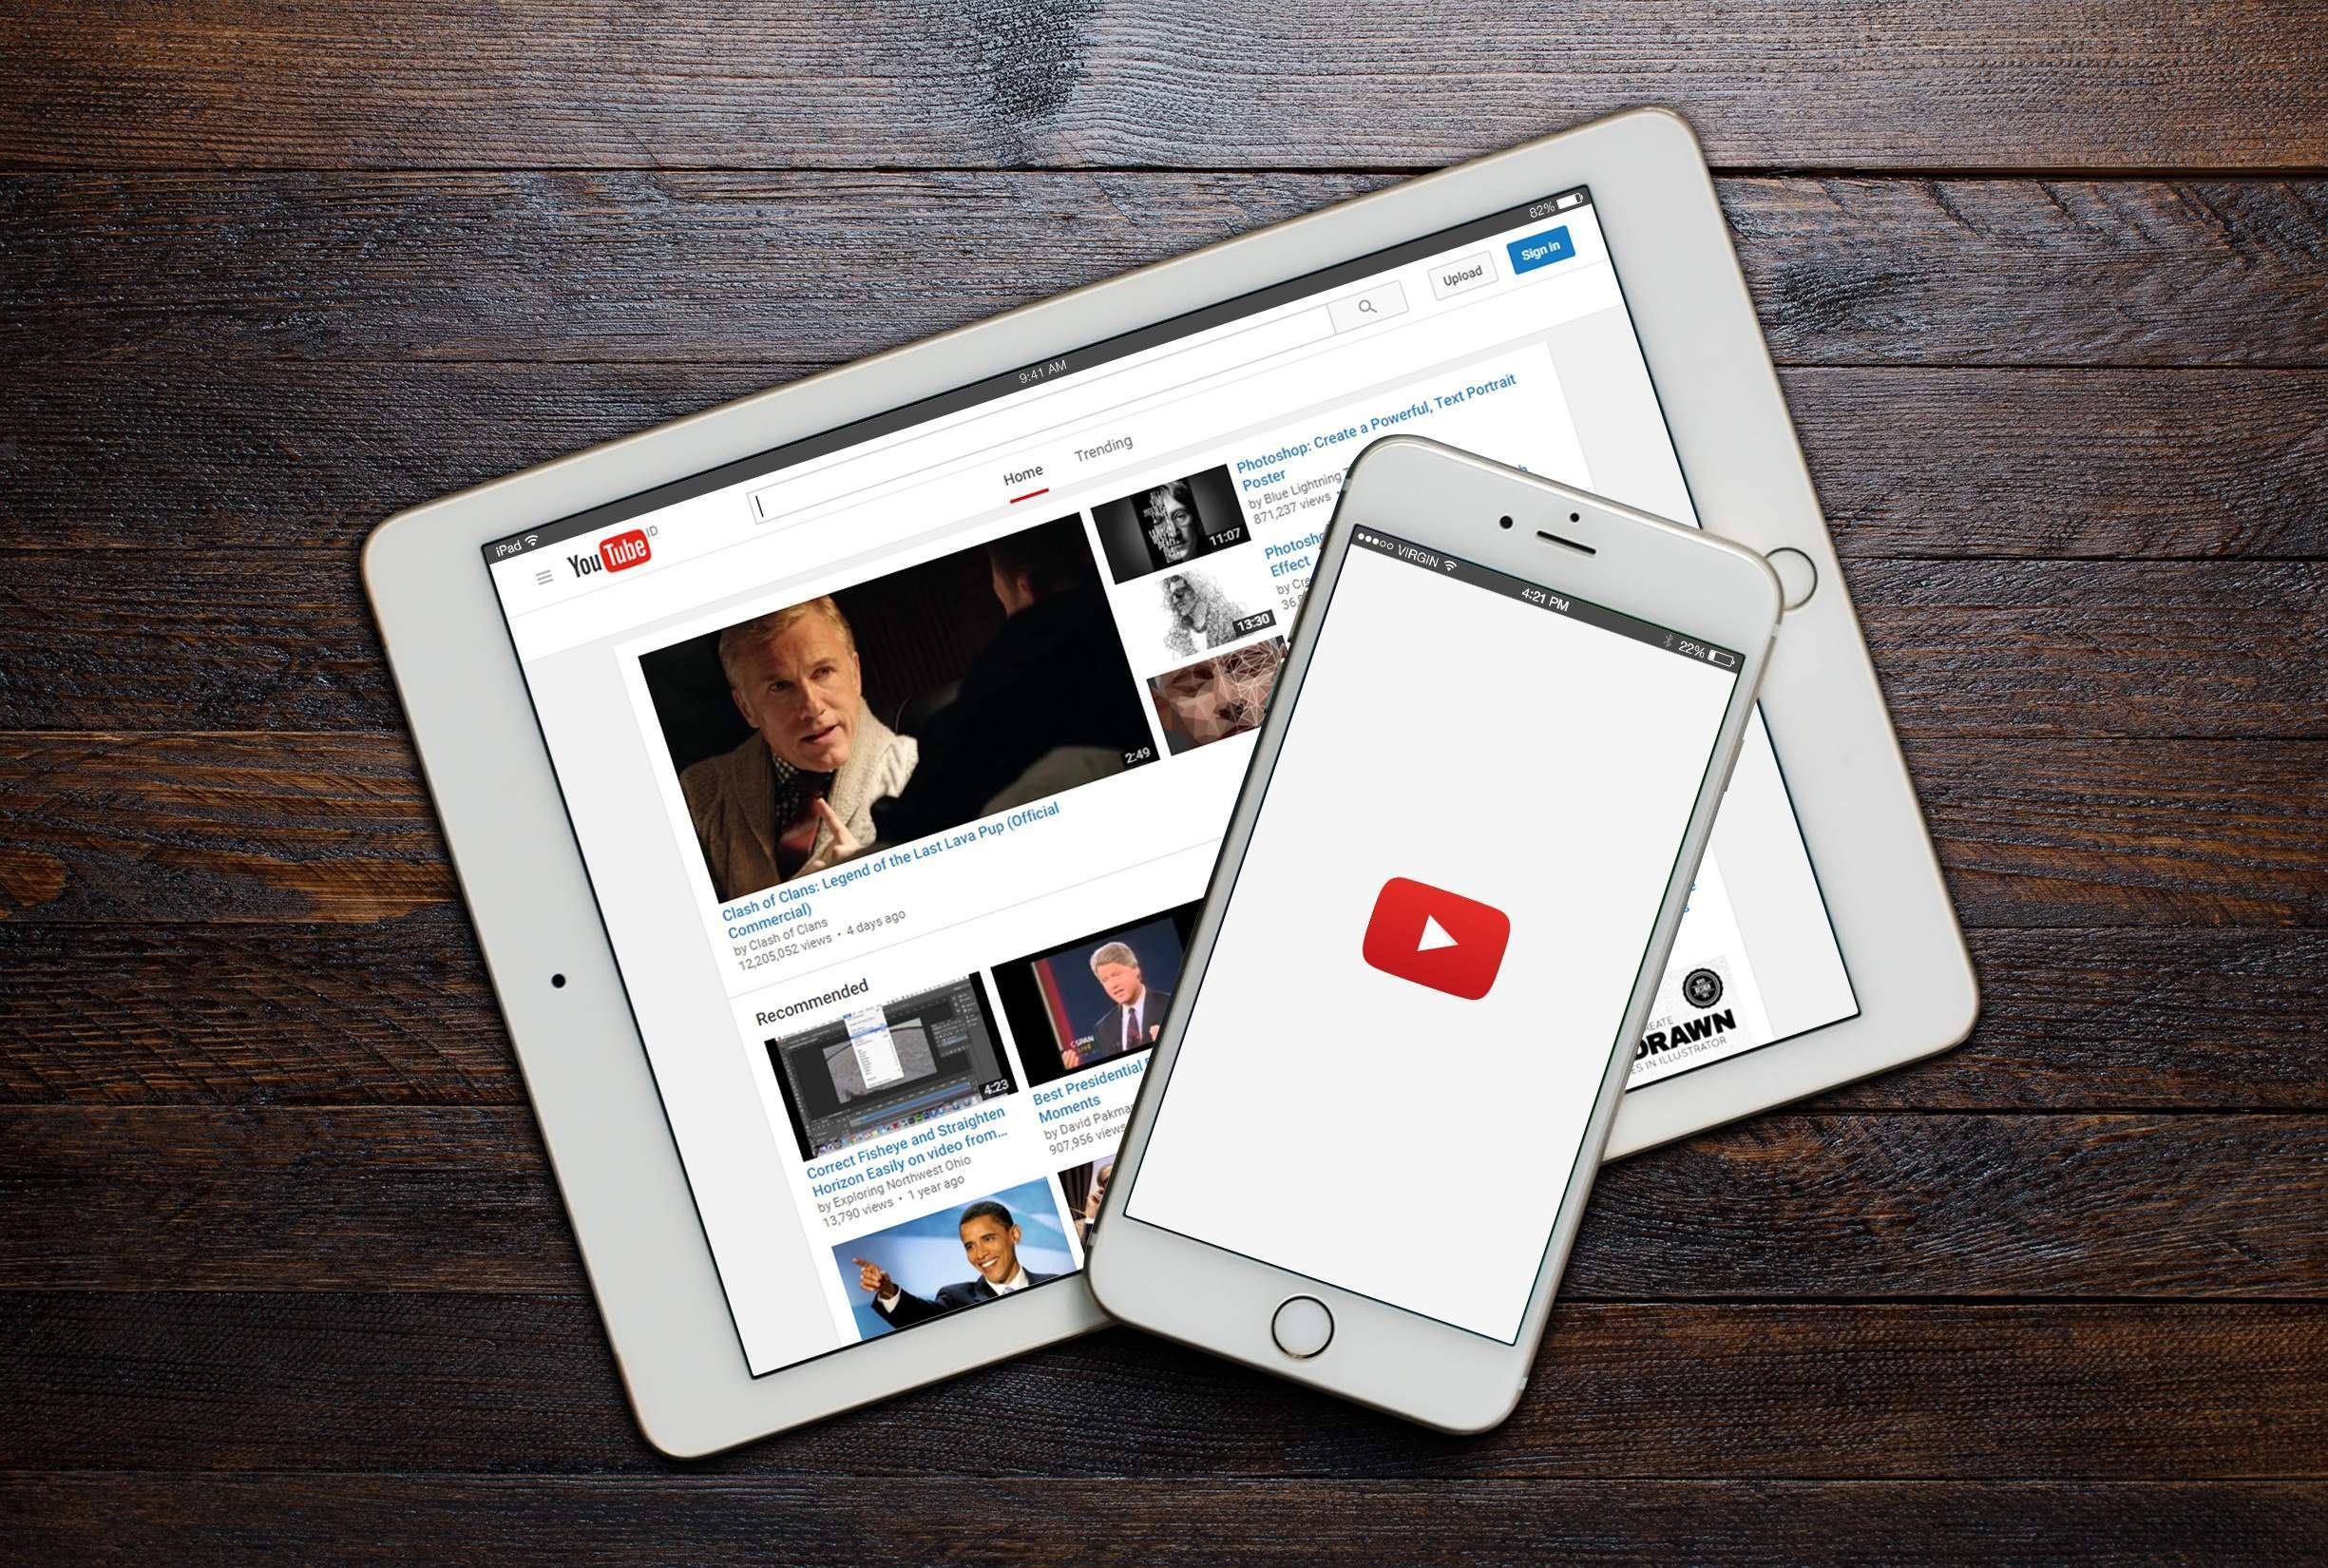 YouTube wants to get millennials watching live TV again